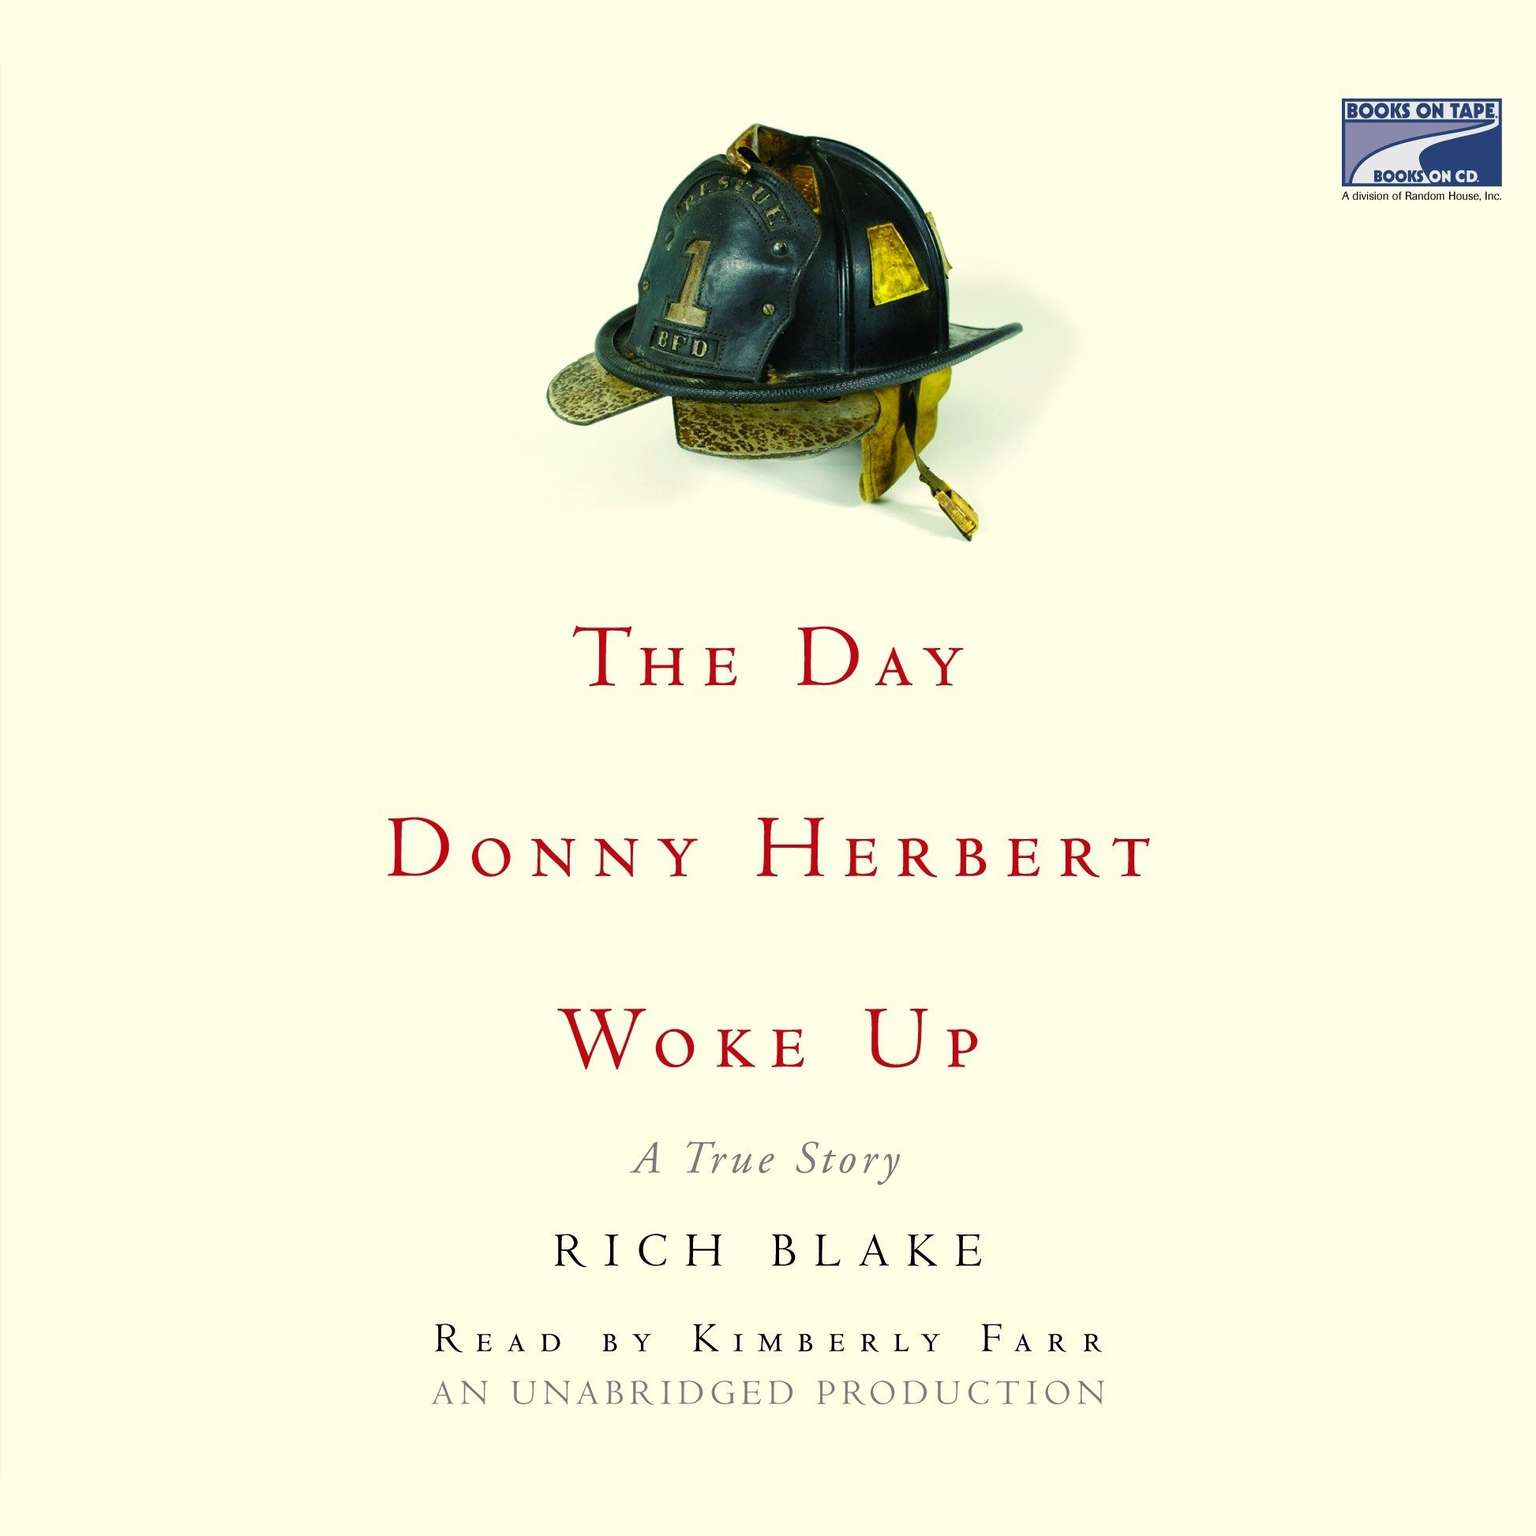 Printable The Day Donny Herbert Woke Up Audiobook Cover Art